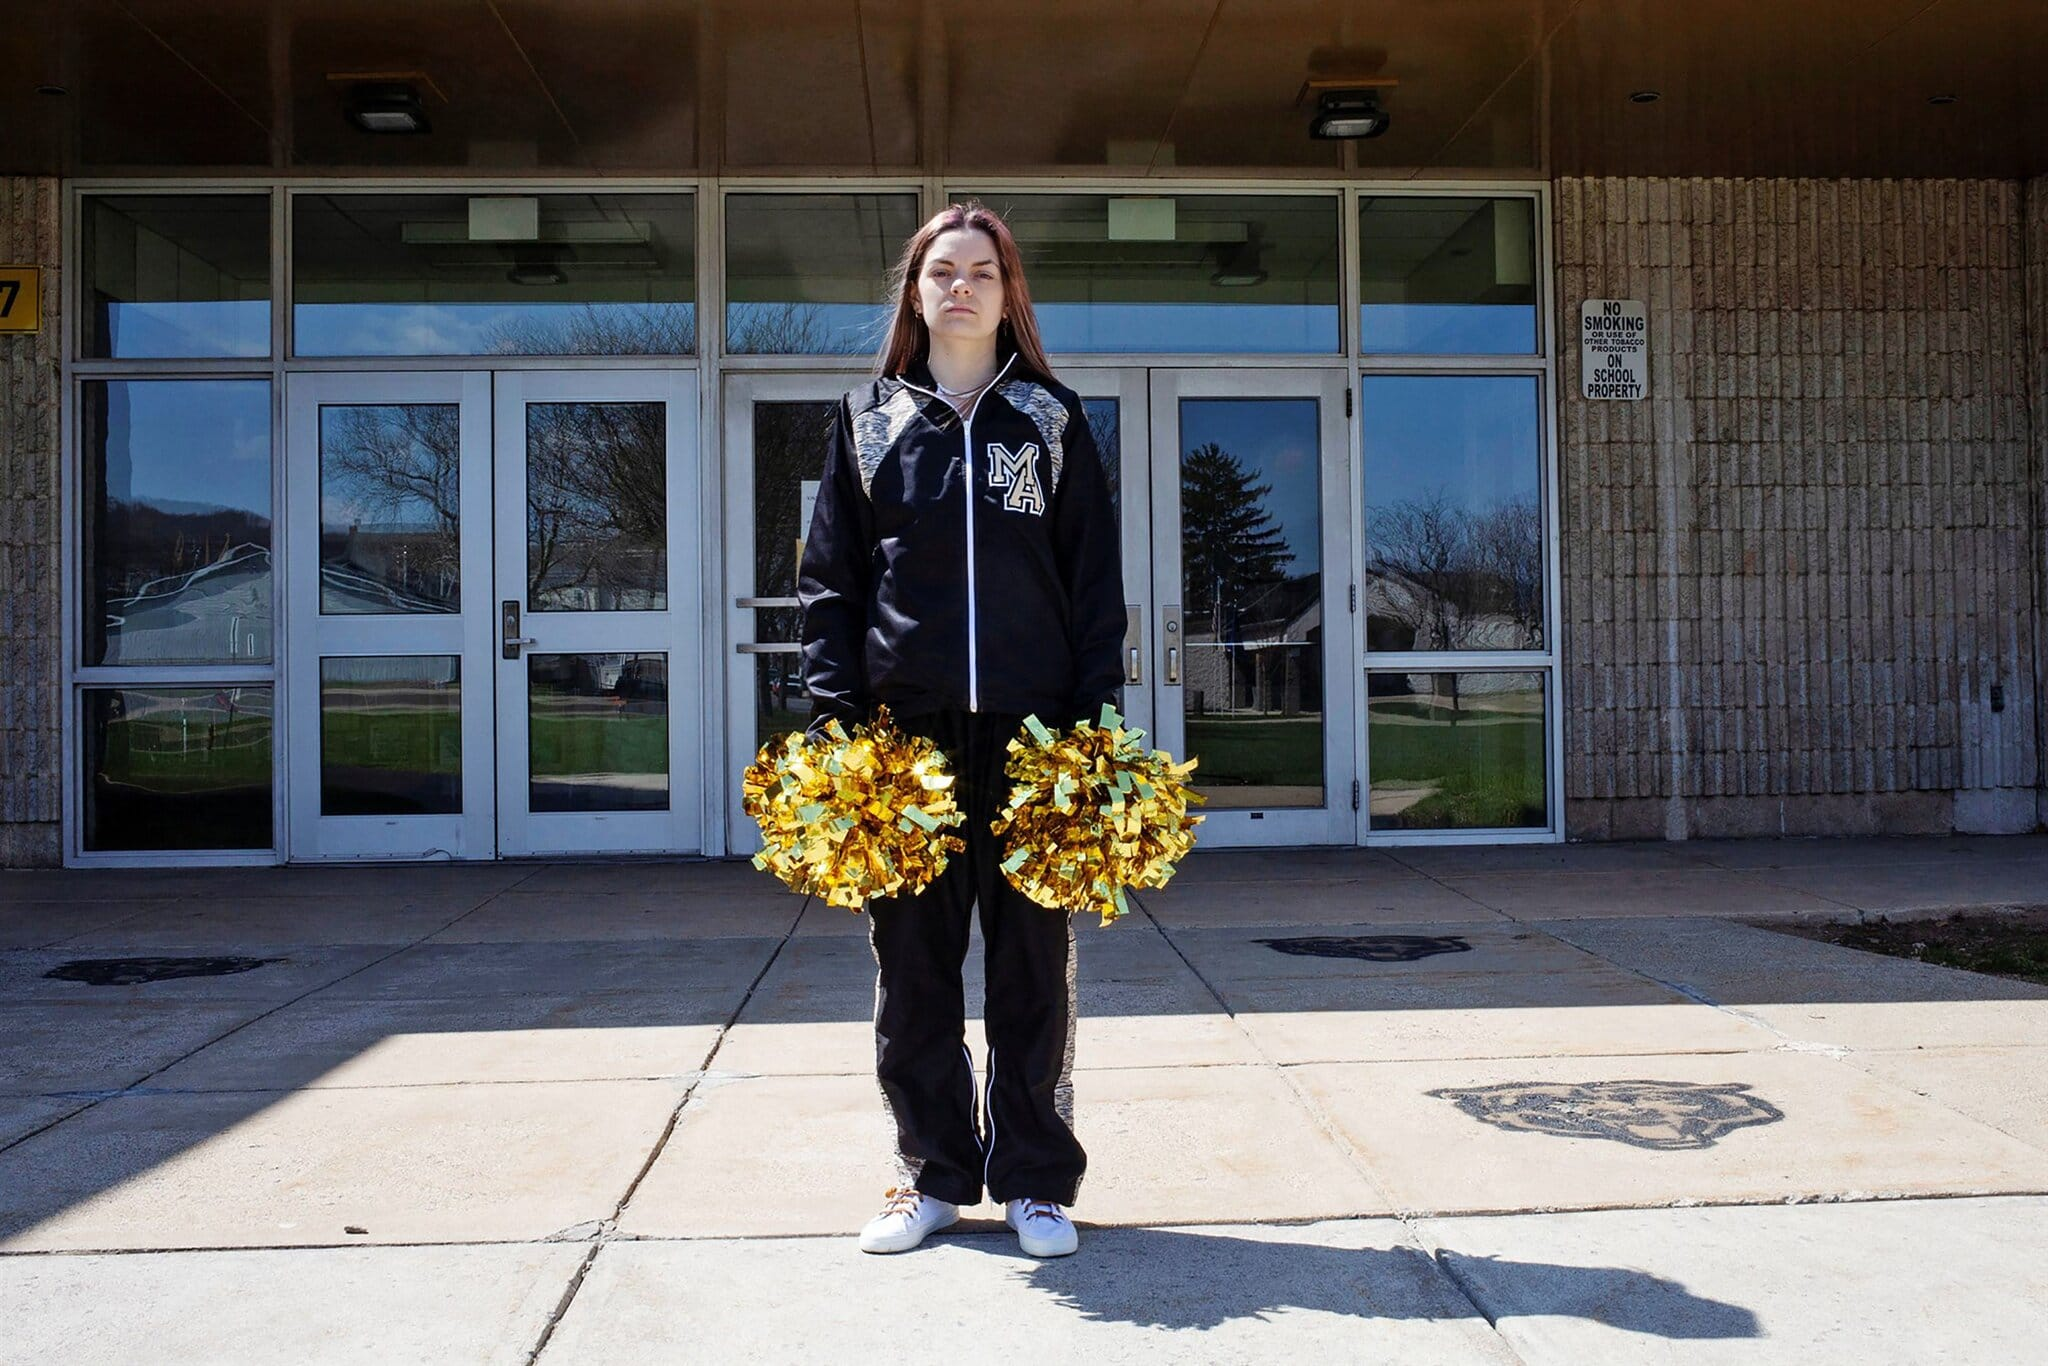 Supreme Court Gives Win To Cheerleader's F-Bombs in Free Speech Case